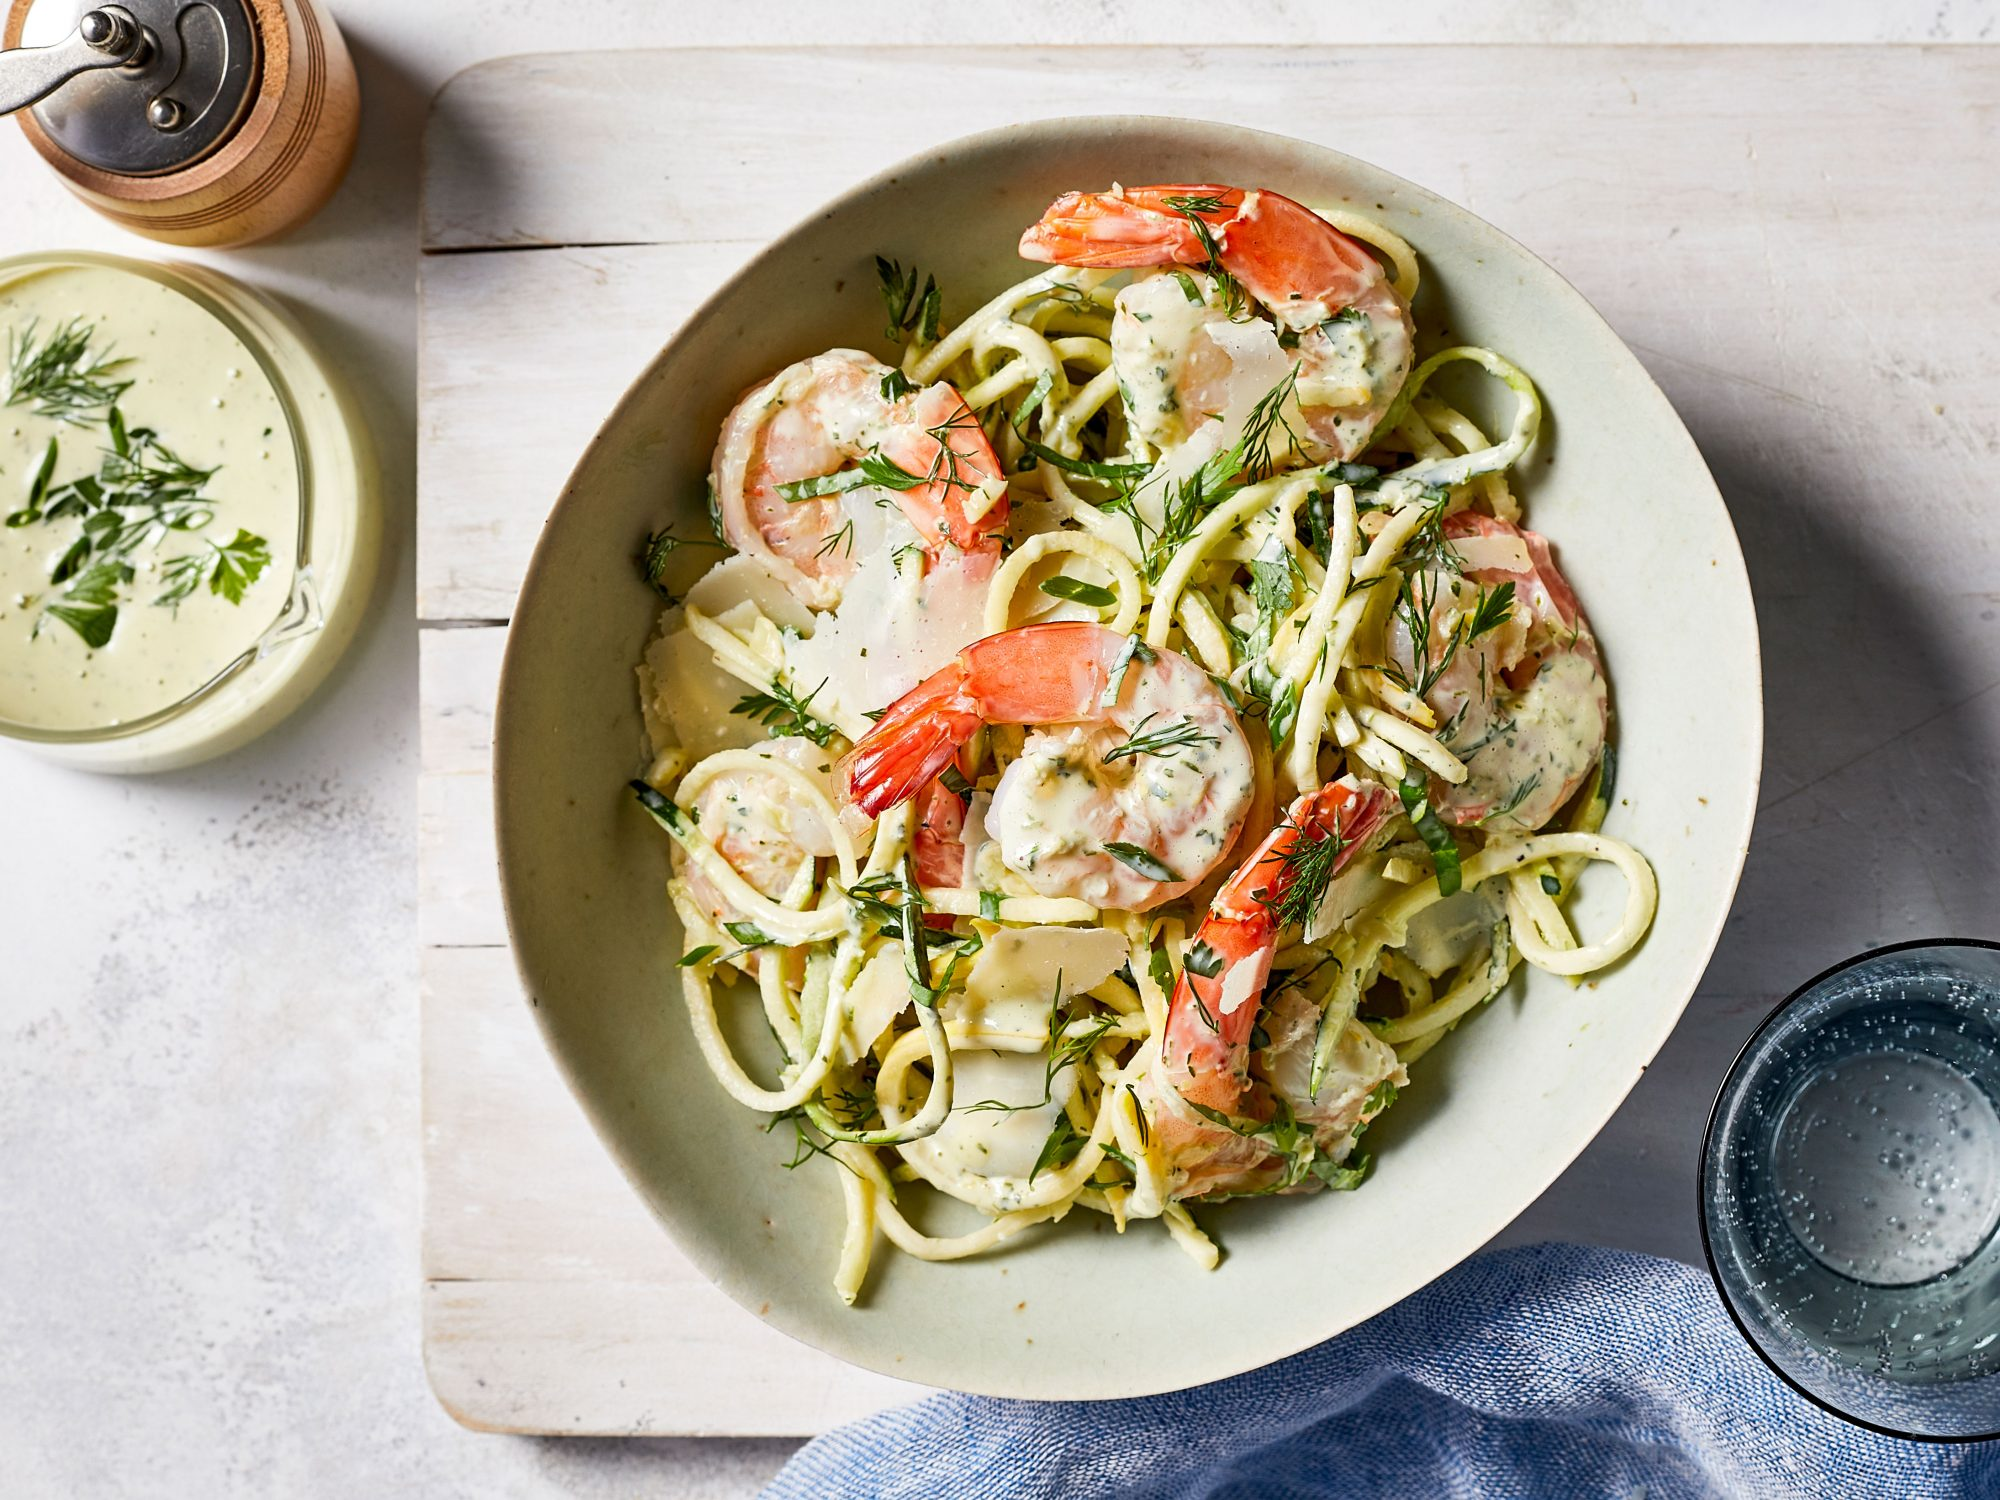 mr- Summer Fresh Zucchini-Squash Zoodles with Shrimp and Green Goddess Dressing